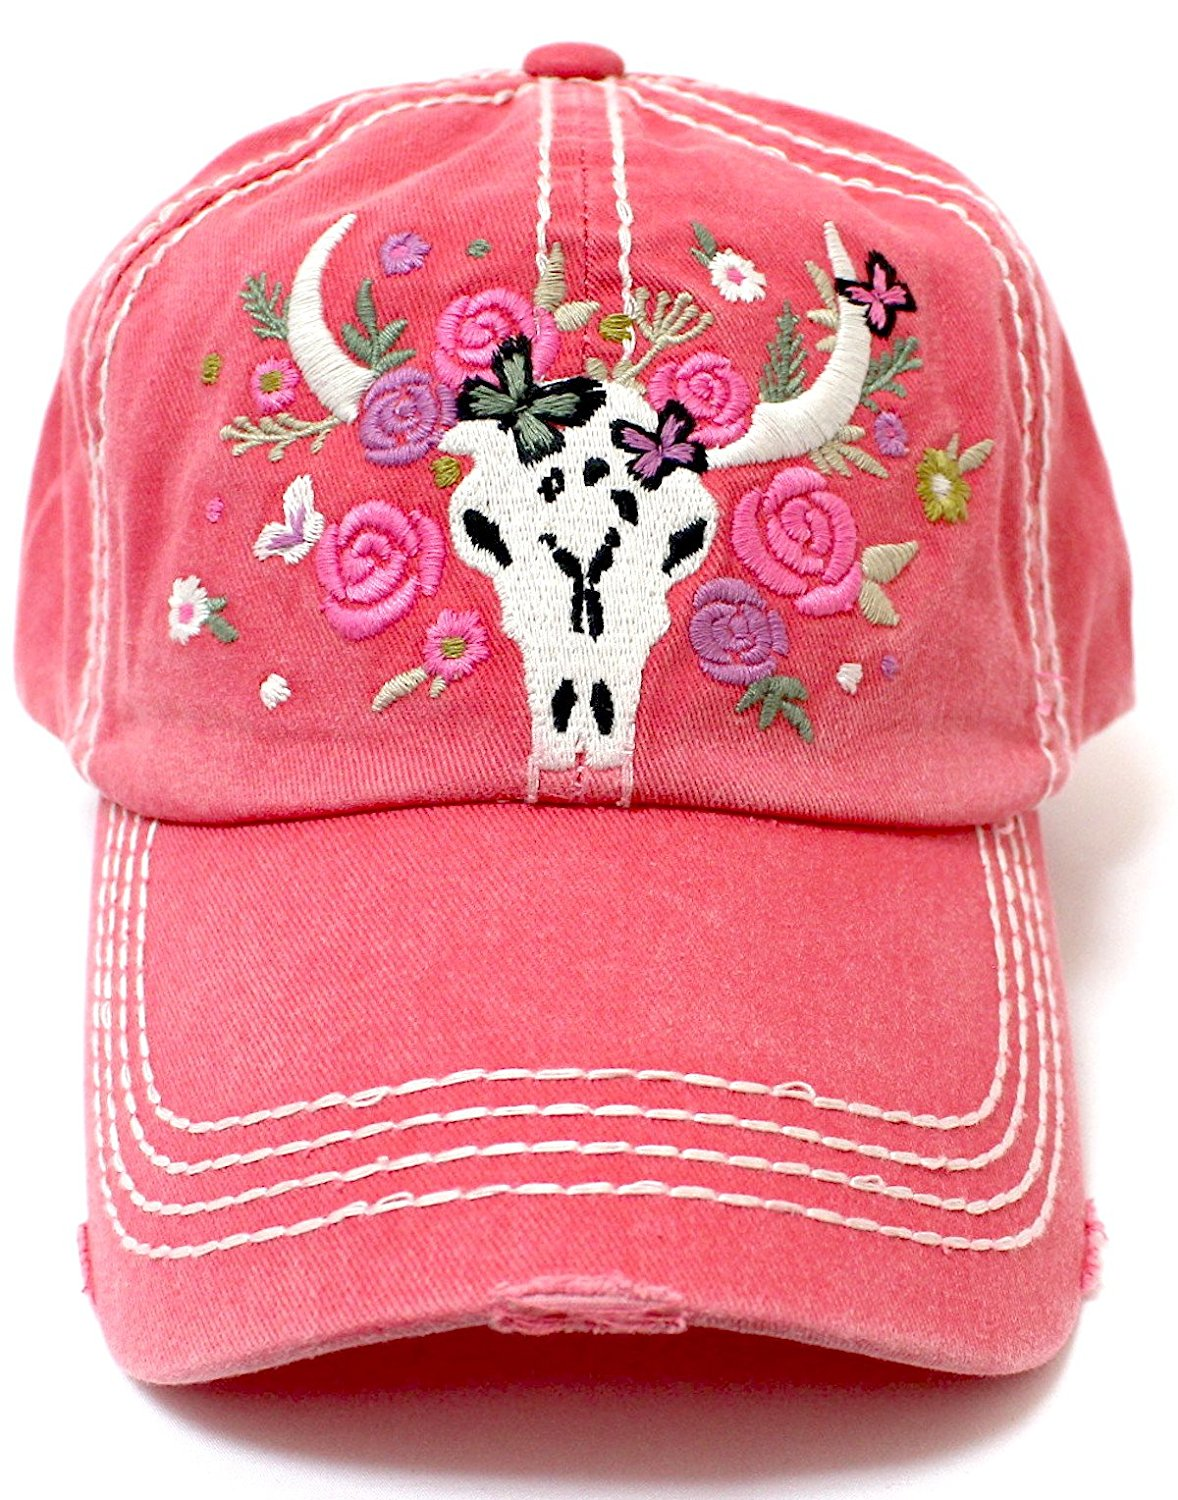 CAPS 'N VINTAGE Rose Pink Women's Floral Cow Skull Embroidery & Rose Detail Hat - Caps 'N Vintage